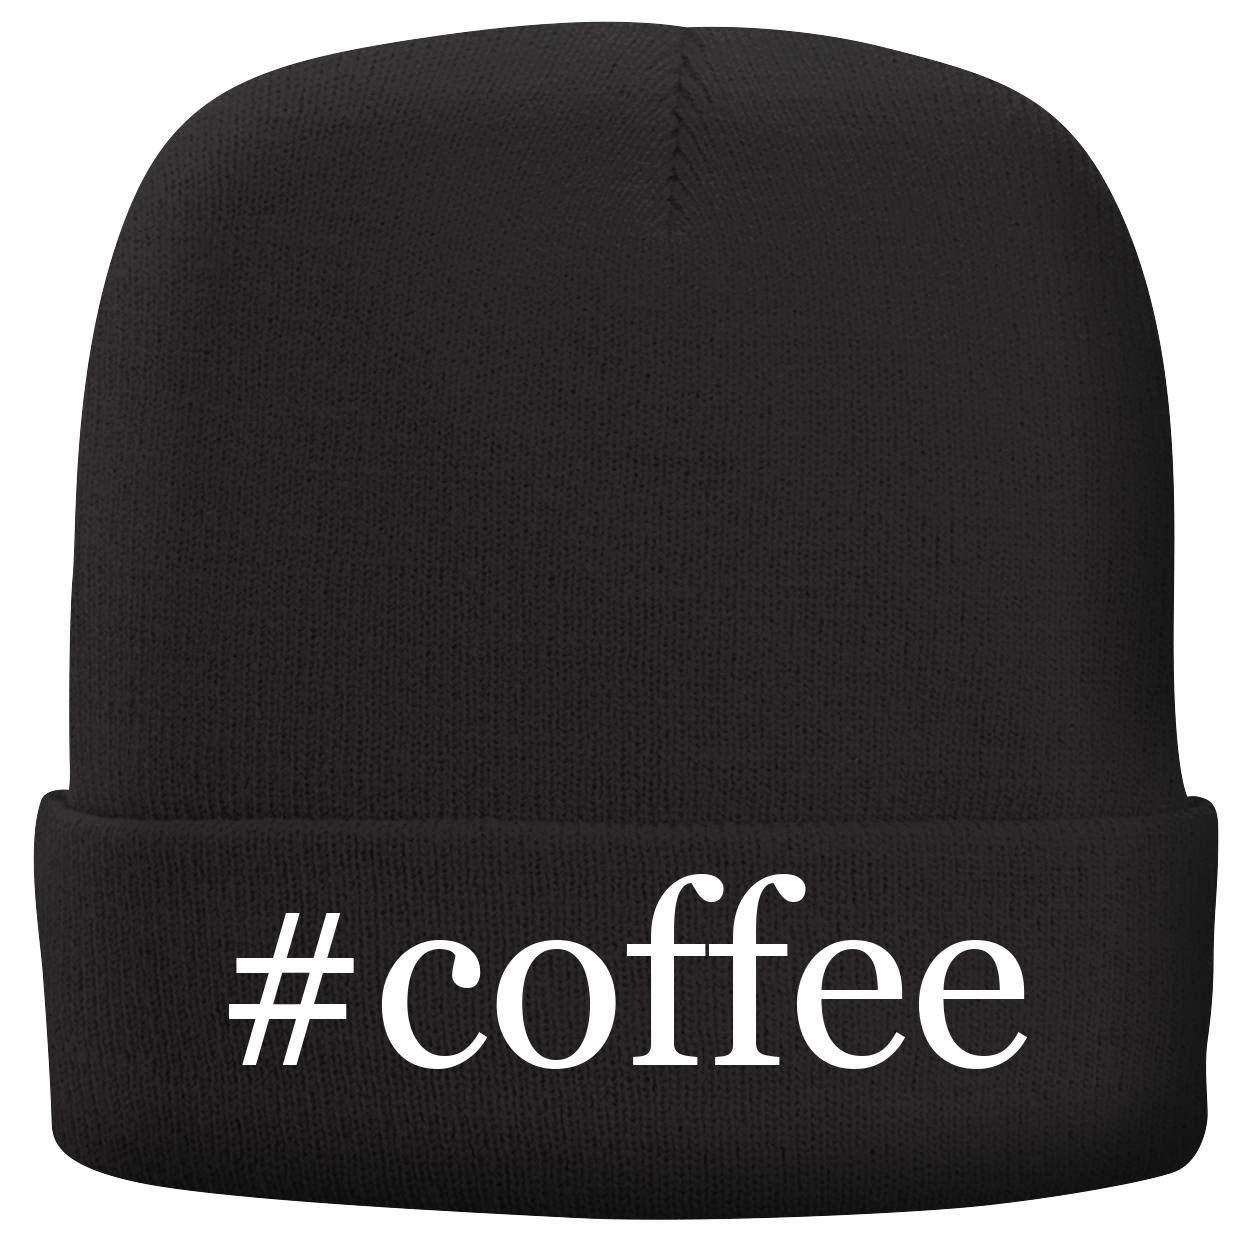 BH Cool Designs #Coffee - Adult Comfortable Fleece Lined Beanie